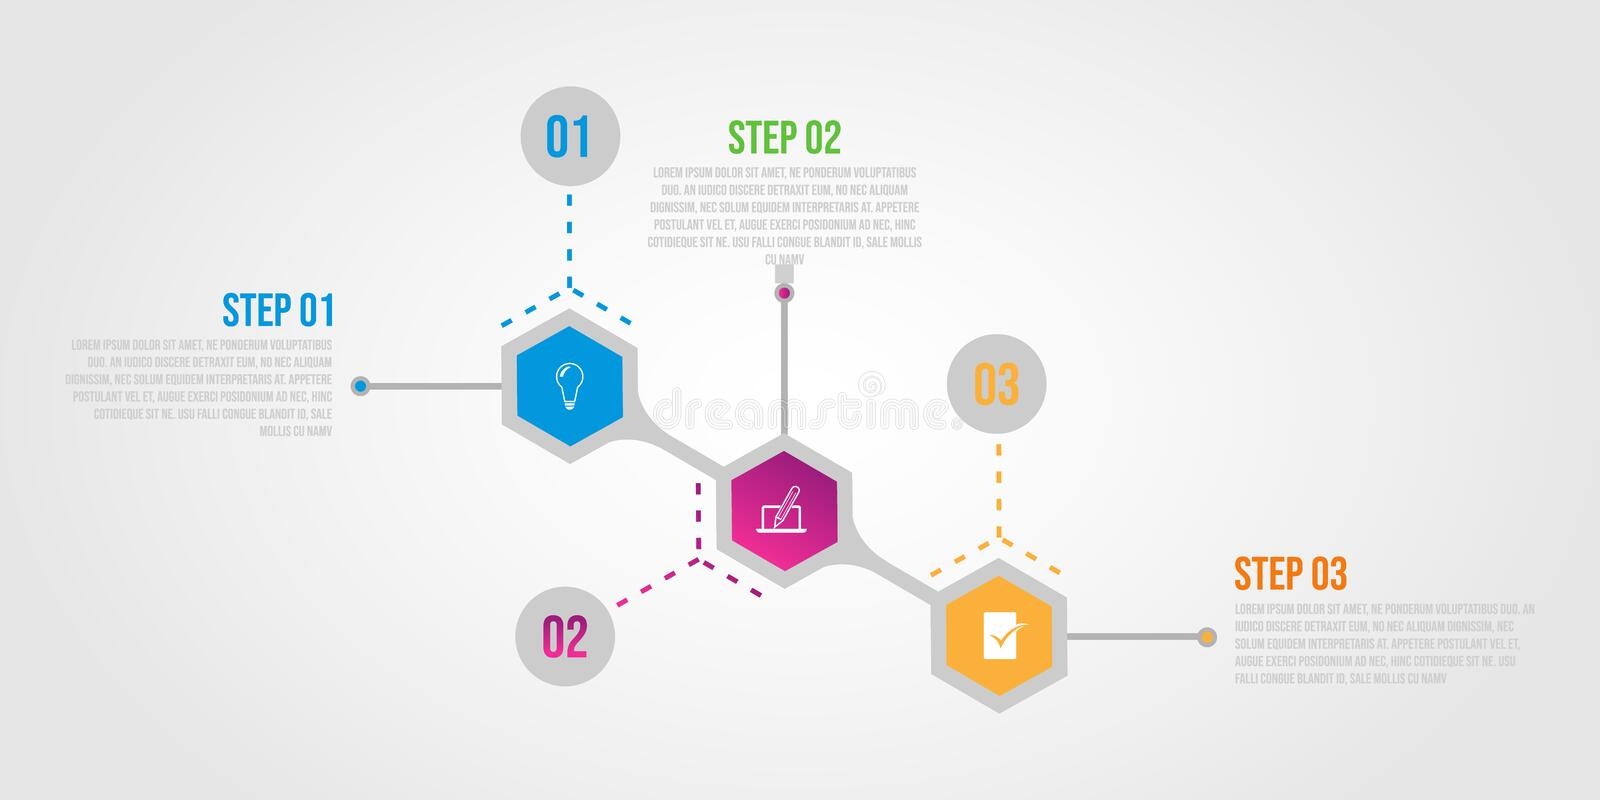 Infographic template with 4 steps workflow design illustration. Infographic template with 3 steps workflow design business marketing logo vector illustration vector illustration